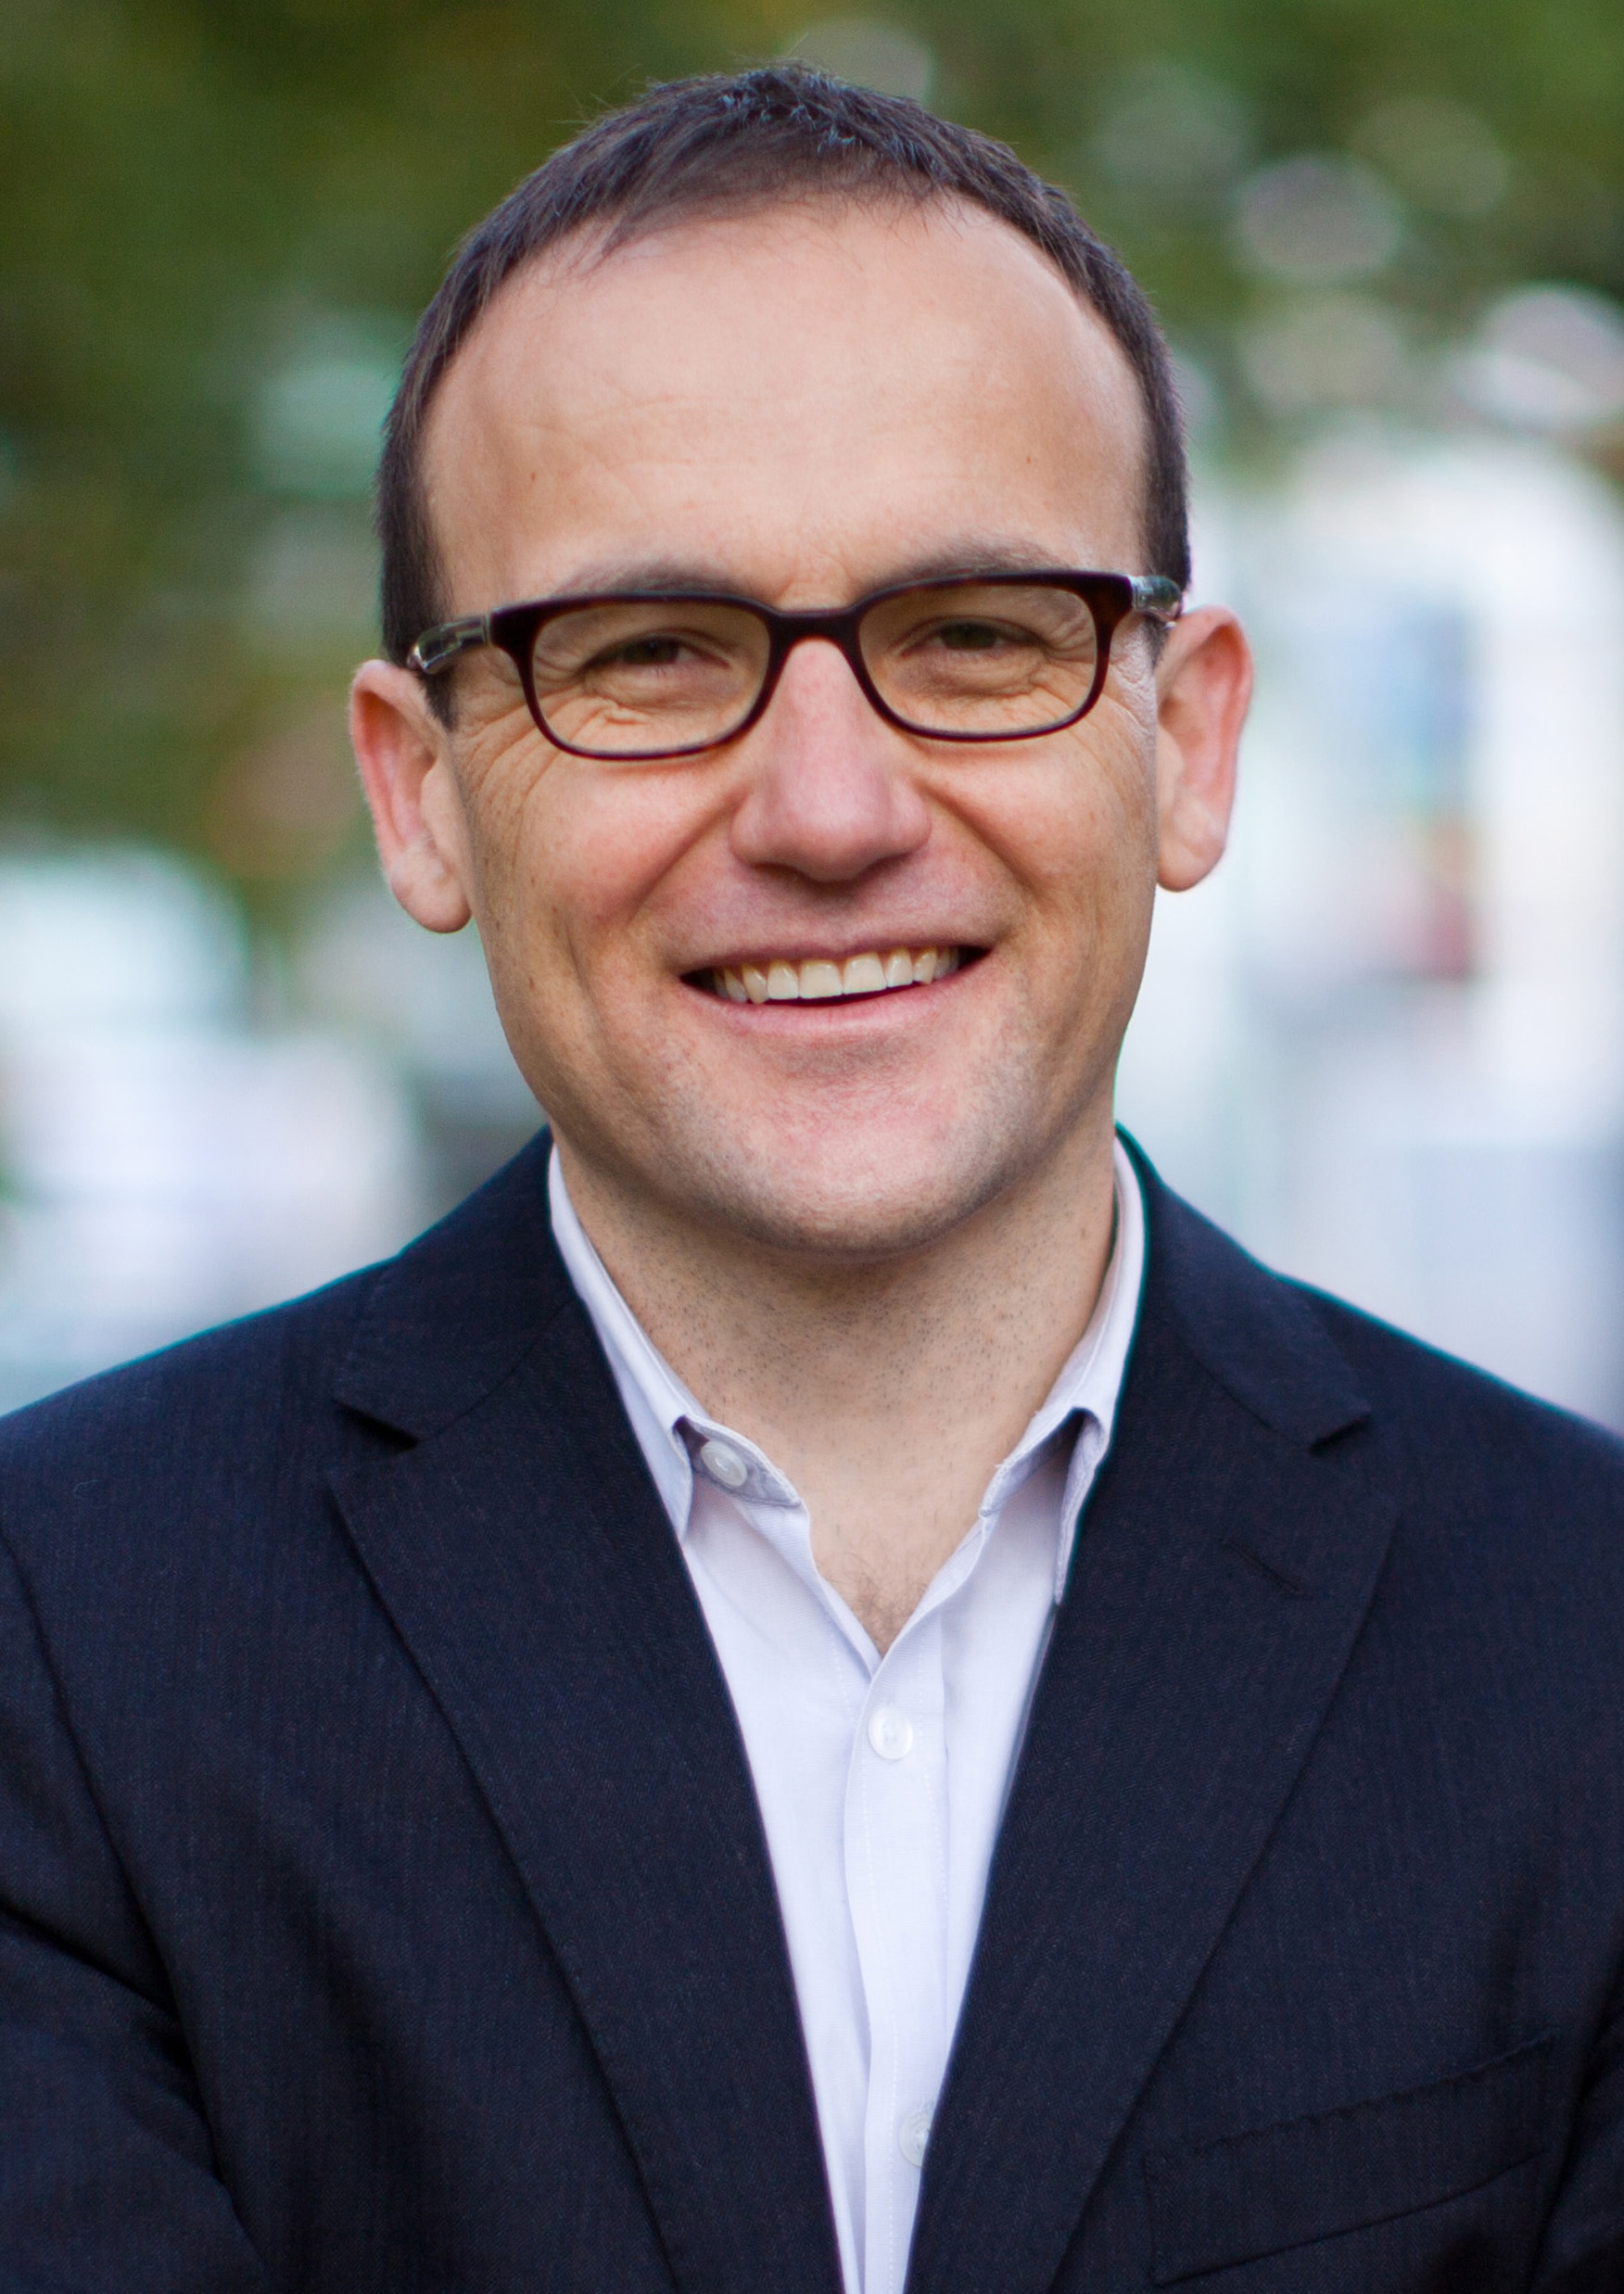 Adam_Bandt_2013Campaign_Photo_OFFICIAL.jpg